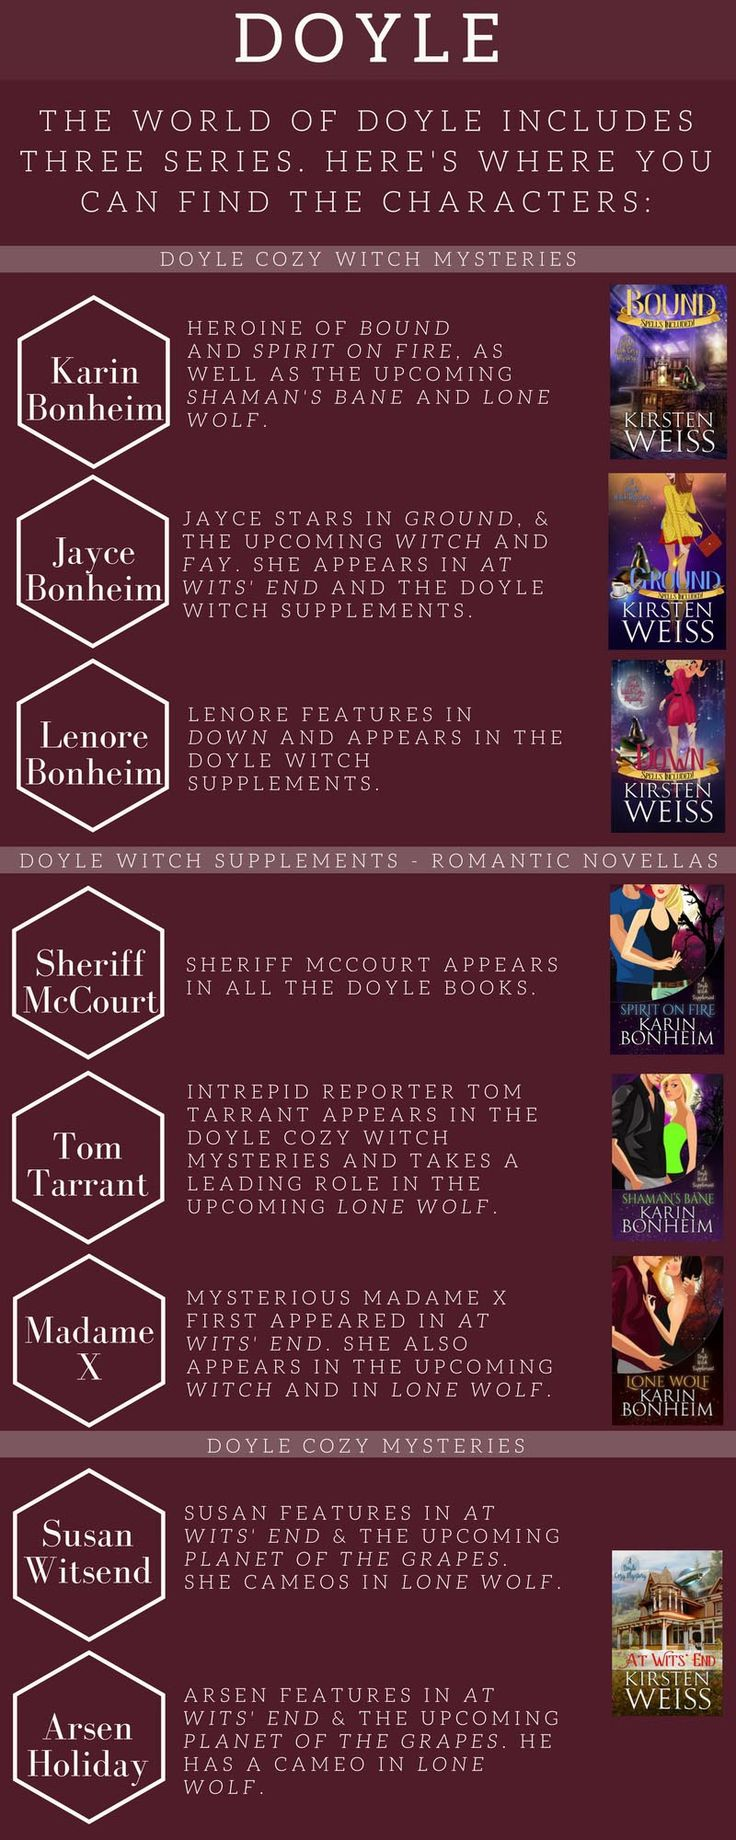 The World of Doyle - how do the Doyle witches, At Wits' End, and the PNR novellas intersect? I've created this handy infographic to explain (and hint at what's coming next)